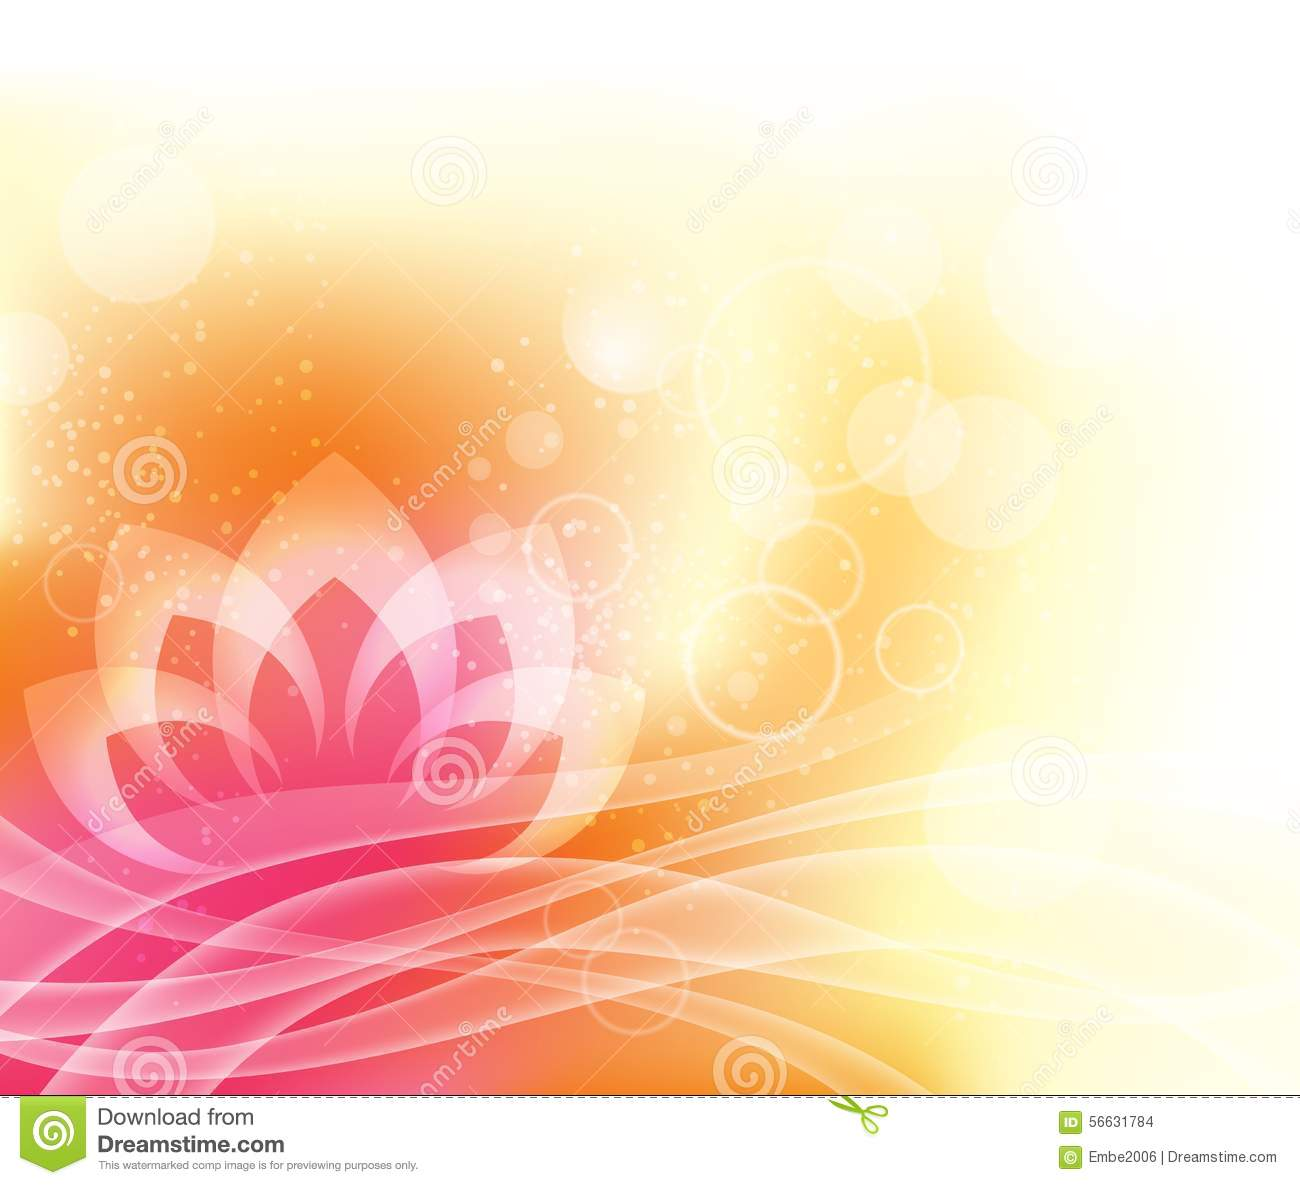 Lotus Flower Design Wall Paper : Lotus yoga background stock photo image